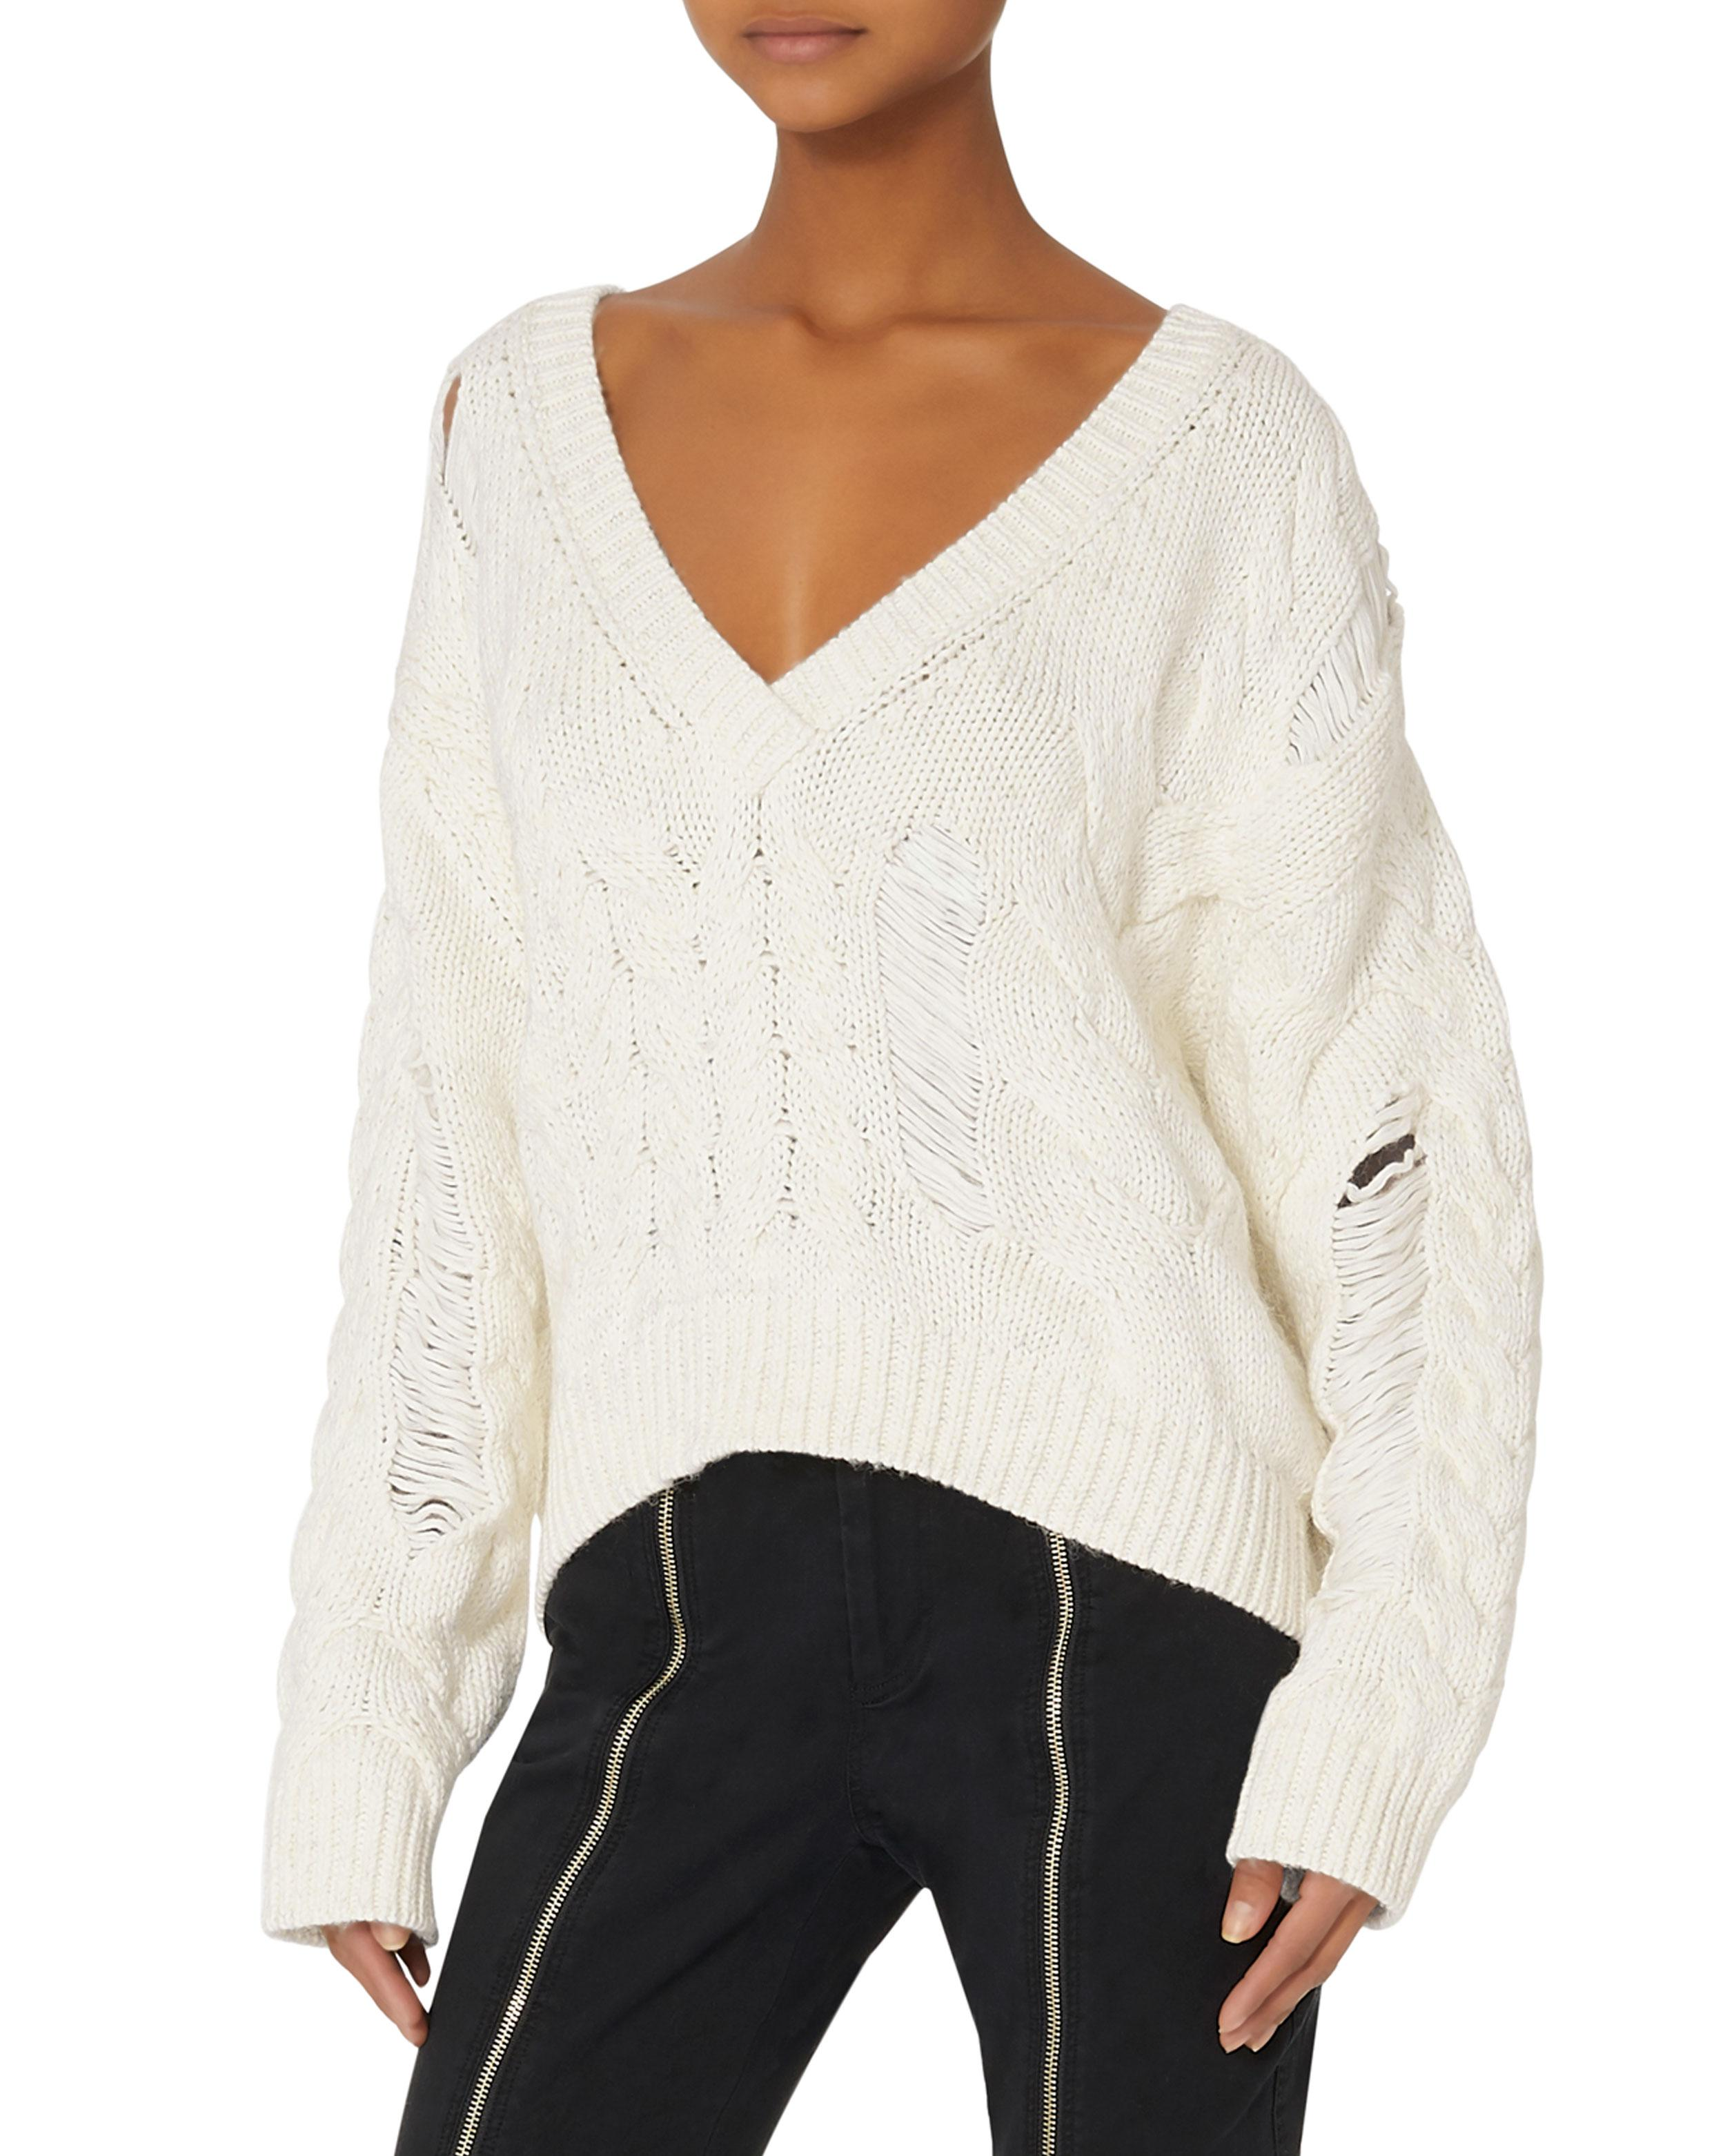 Outlet Real KNITWEAR - Jumpers Iro The Cheapest Buy Cheap Genuine t3DHkHlxz